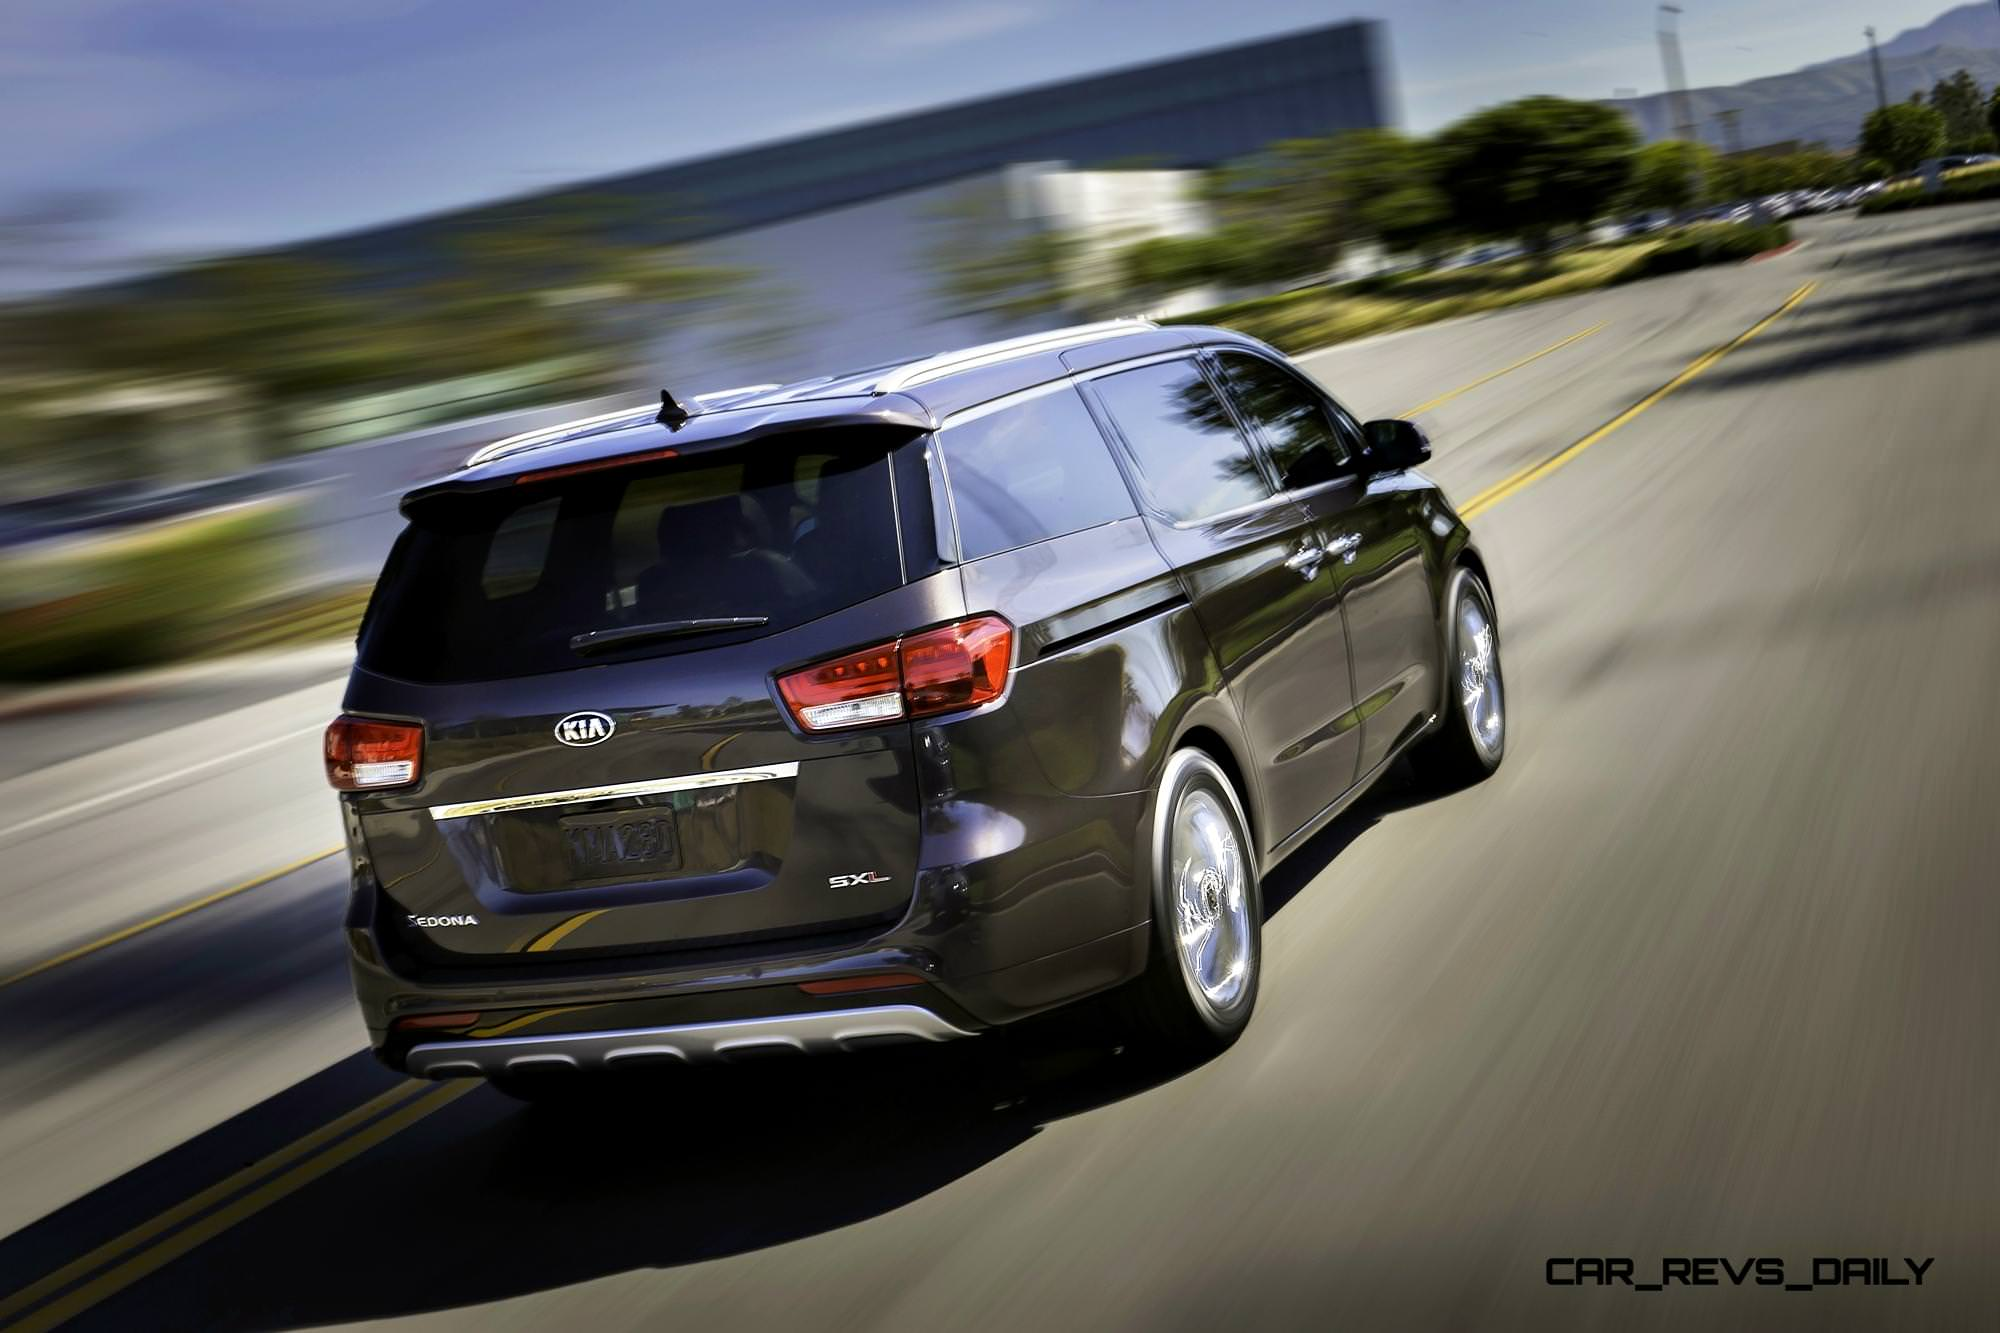 2015 Kia Sedona Becomes Seriously Competitive With Lux Style, Tech